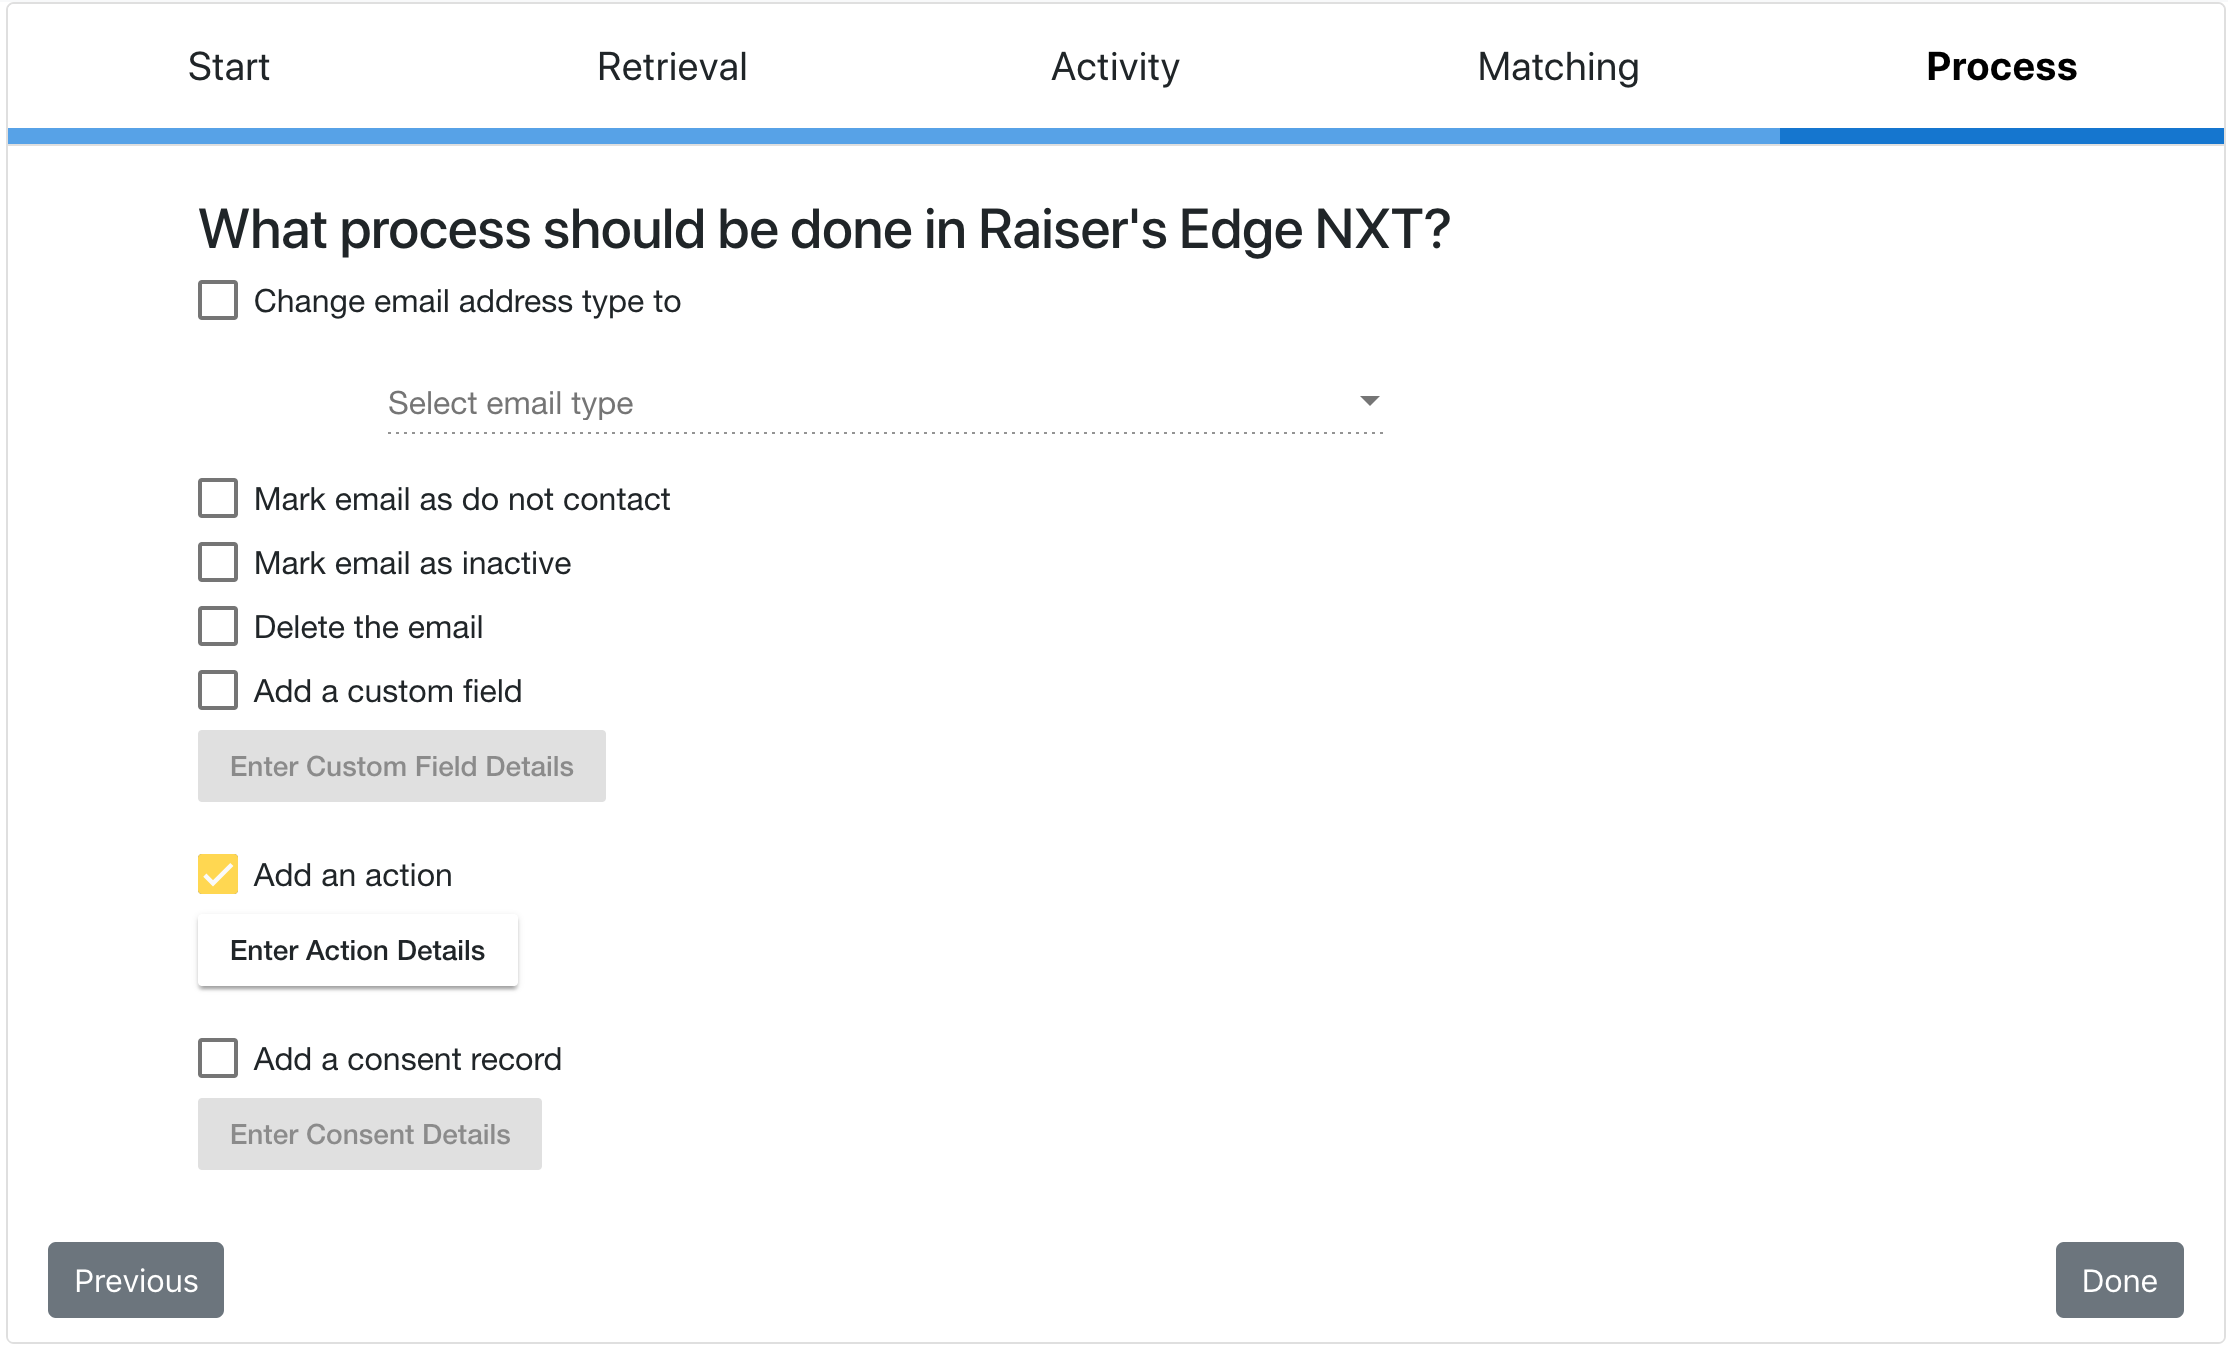 What process should be done in Raiser's Edge NXT?